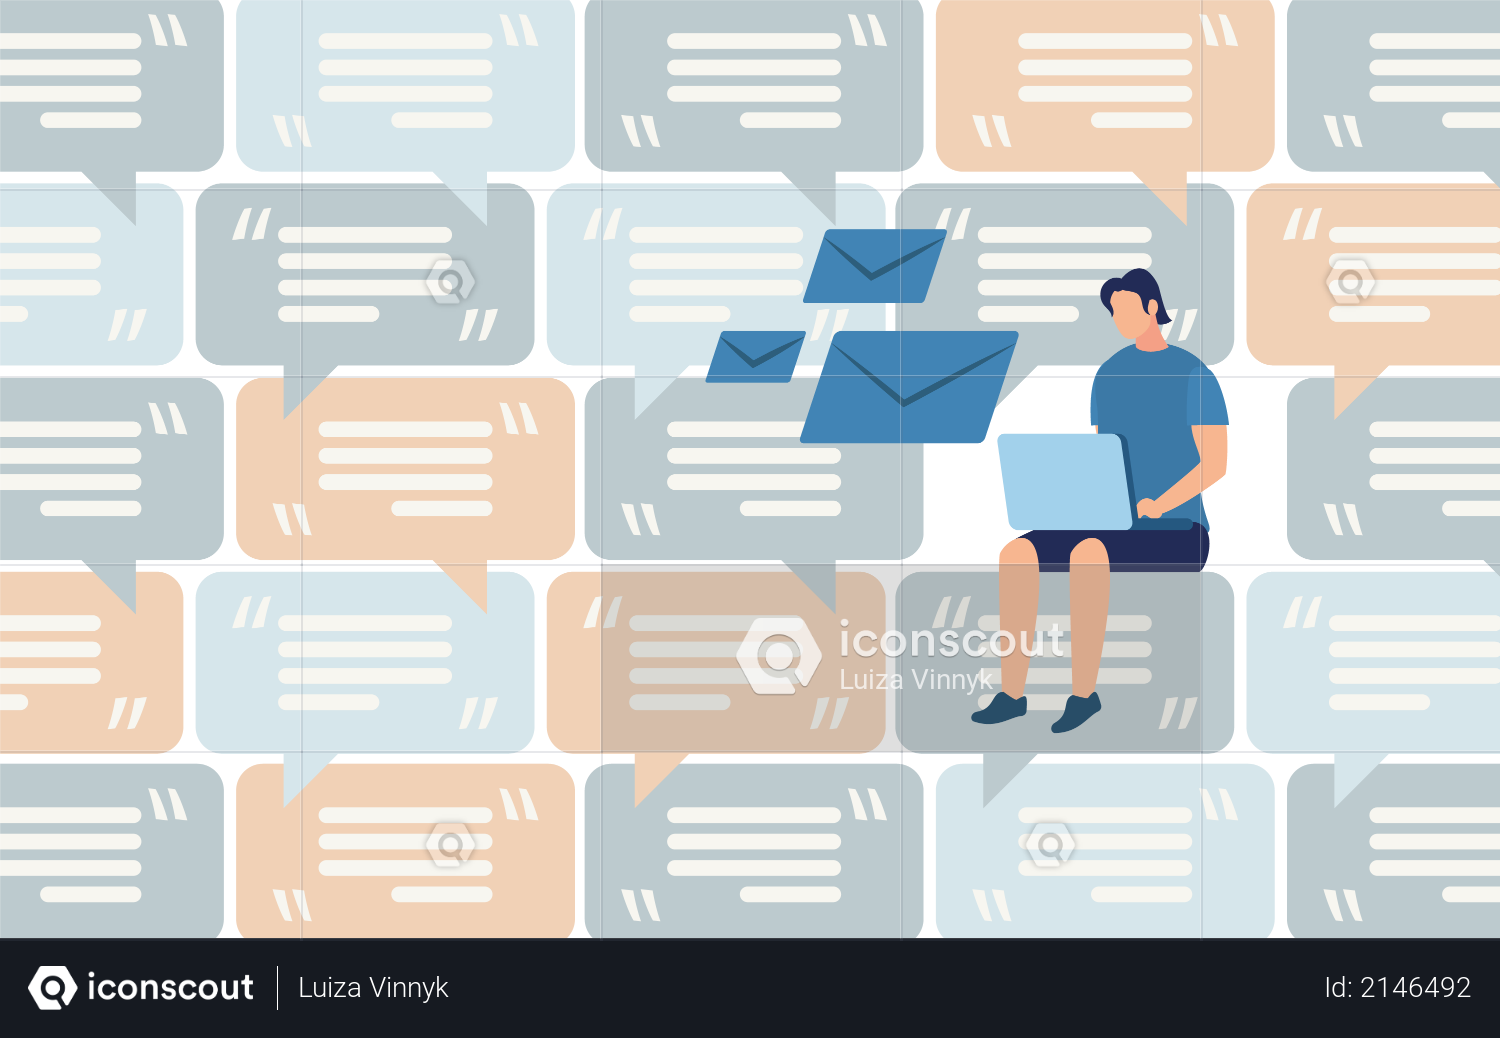 Distant Work, Communication in Social Network, Mass Mailing and Spam, Client Support Illustration